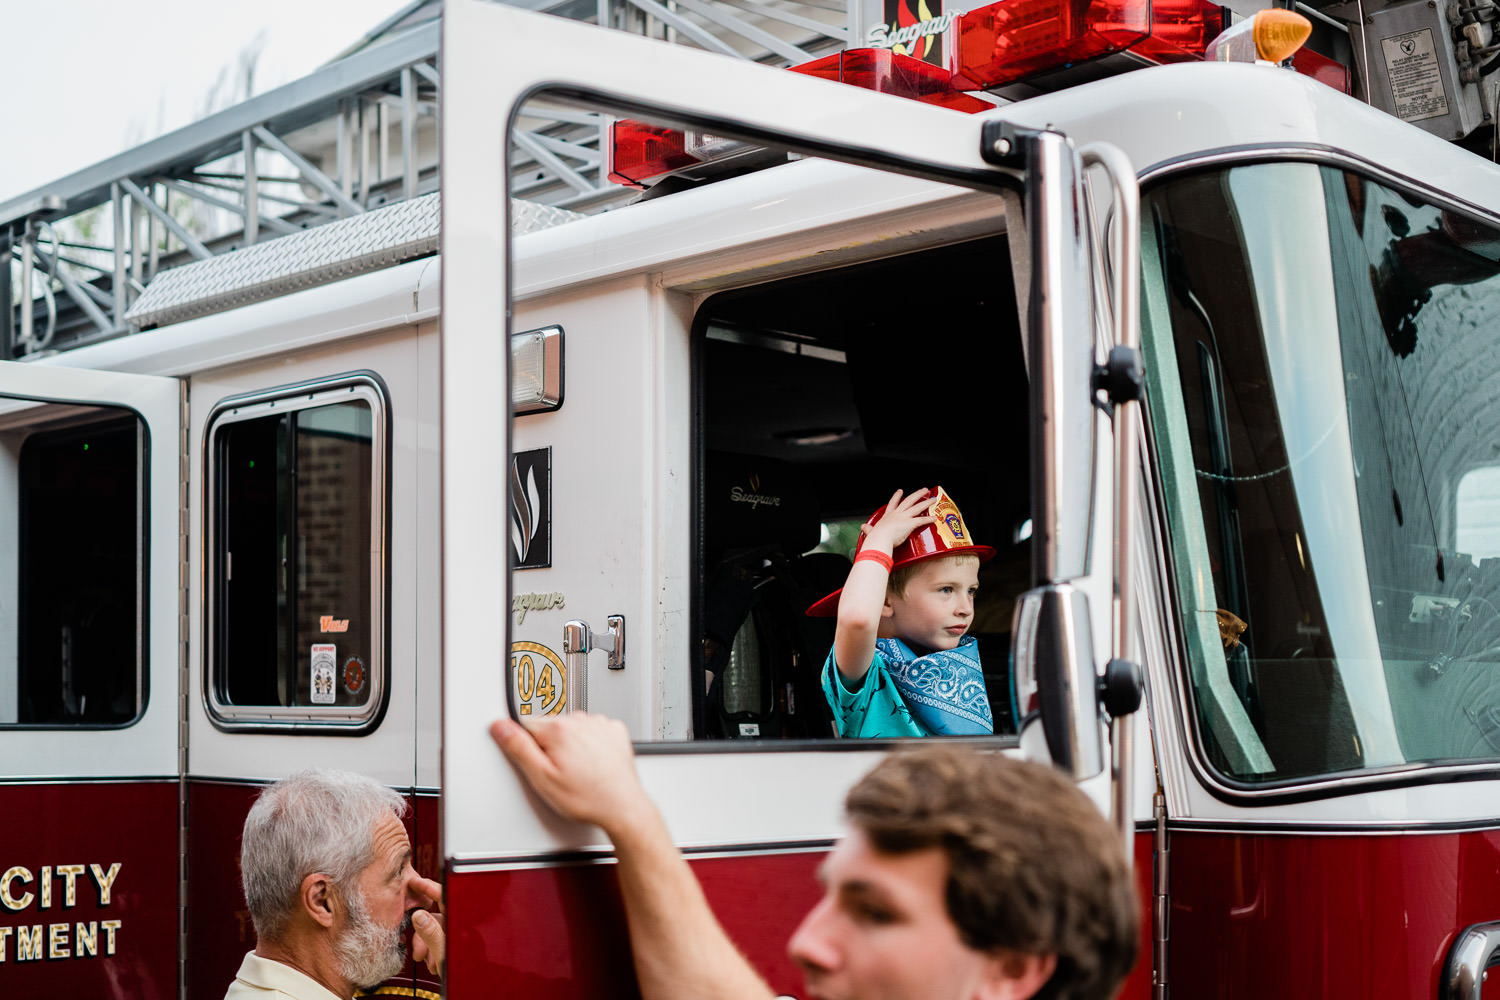 A little boy explores a fire truck.